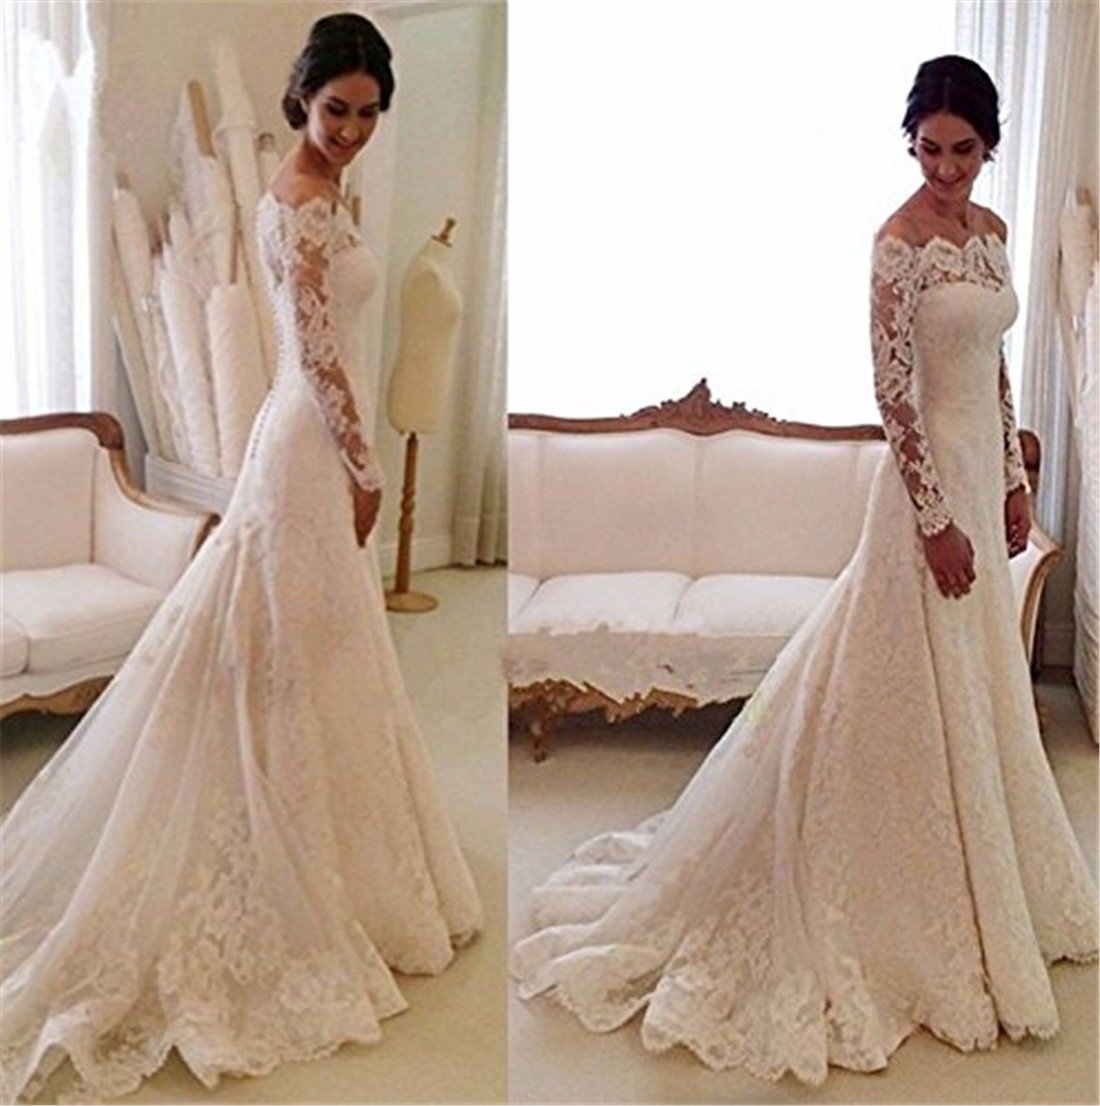 Arrowder Vintage Long Sleeves Beteau Lace Mermaid Wedding Dresses 2016 3